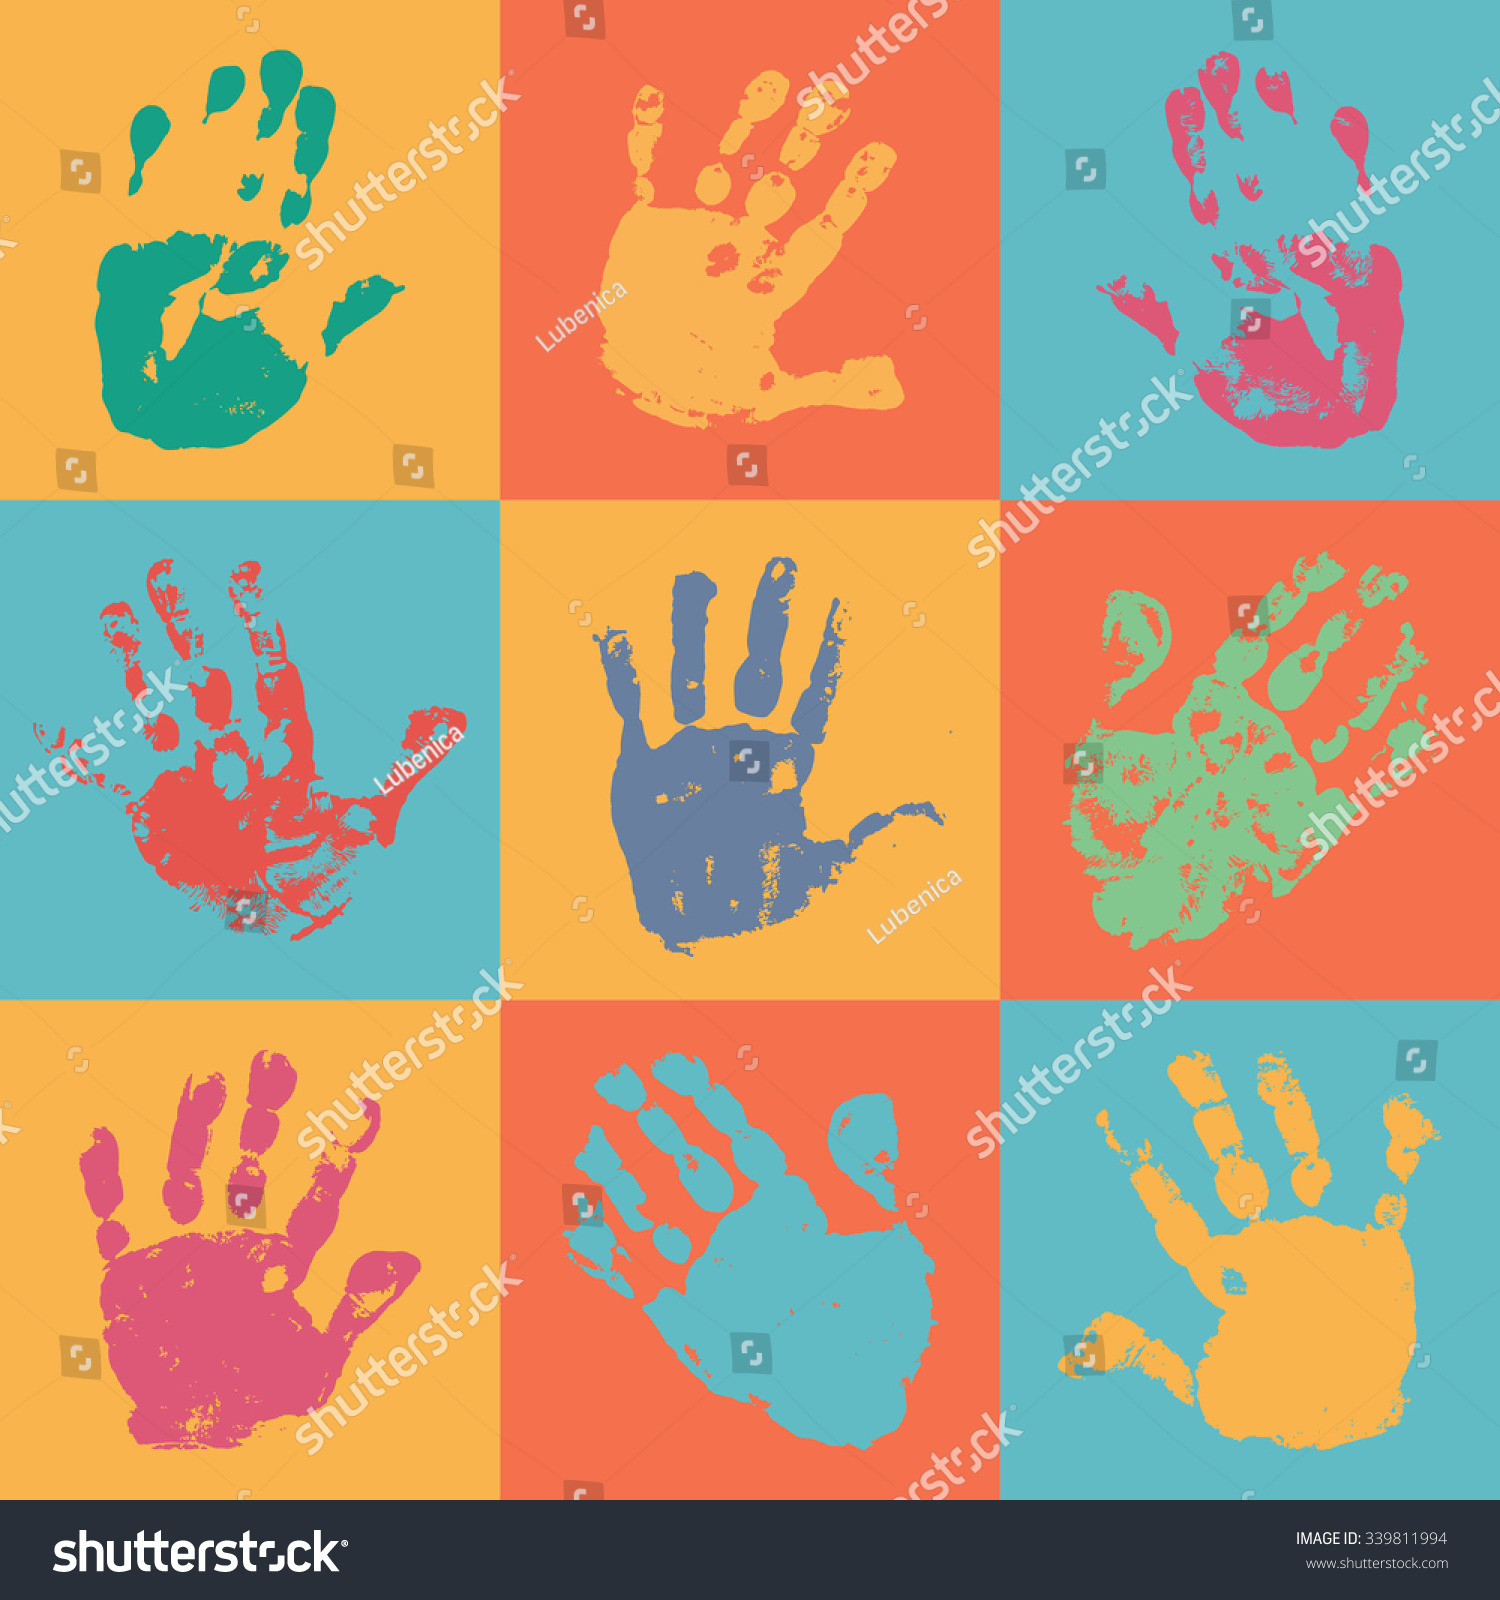 Handprint Poster Flat Style Watercolor Acrylic Stock Vector ...